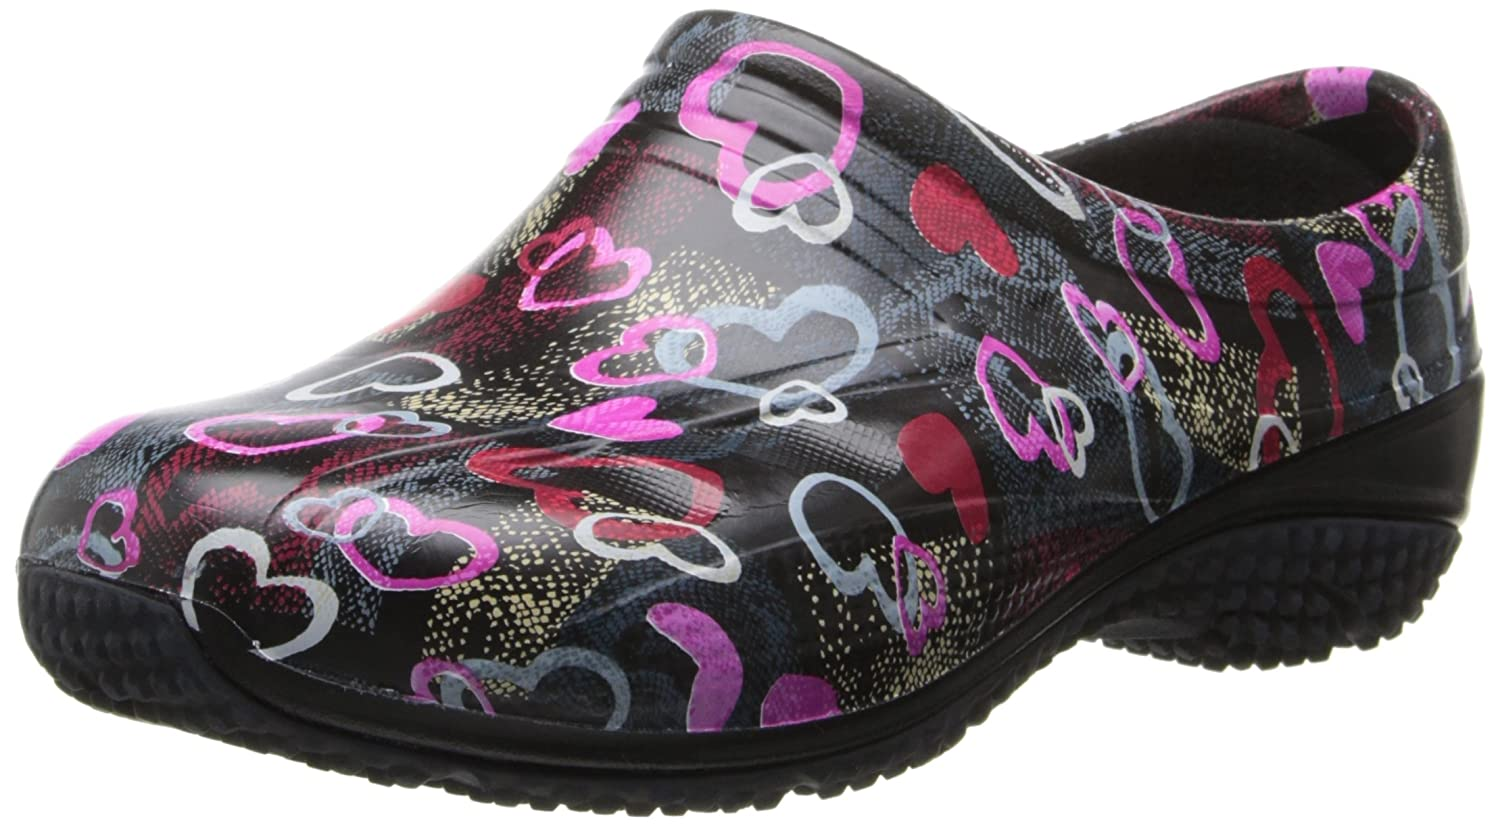 AnyWear Women's Exact Health Care and Food Service Shoe for Plantar Fasciitis